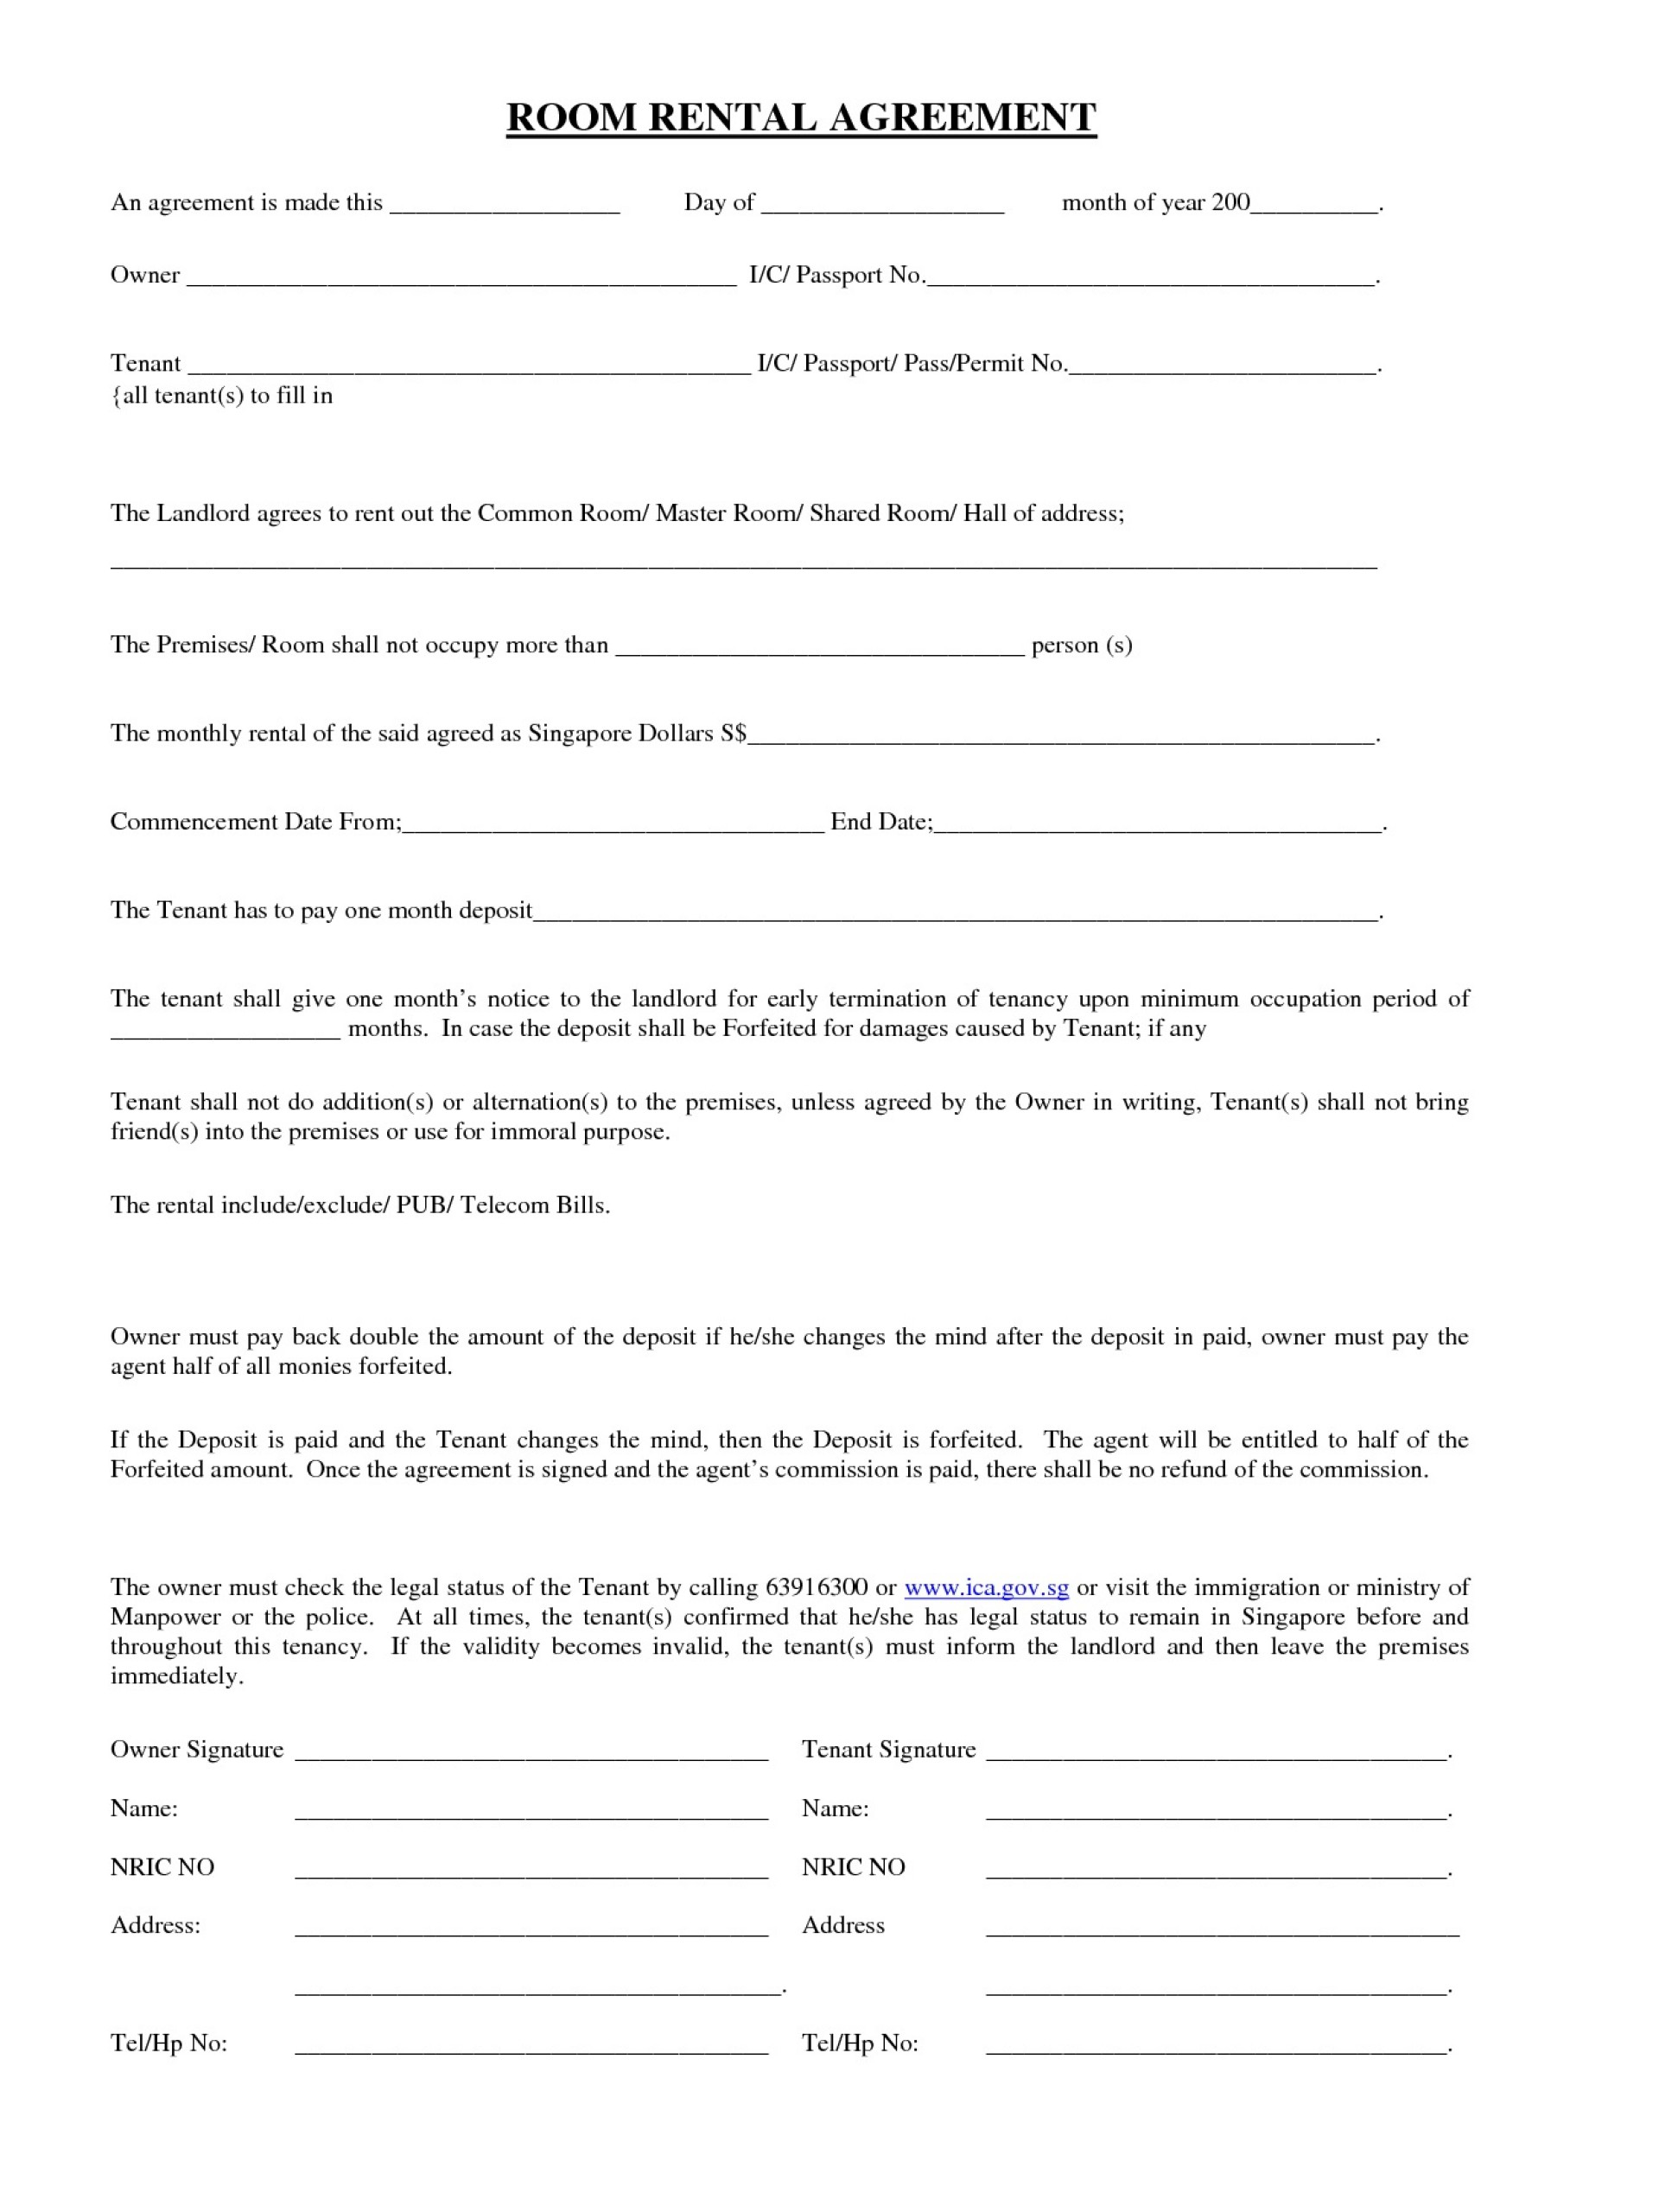 Room Rental Agreement Template Printable Realestate Form  Word Doc Malaysia Singapore Pdf1920